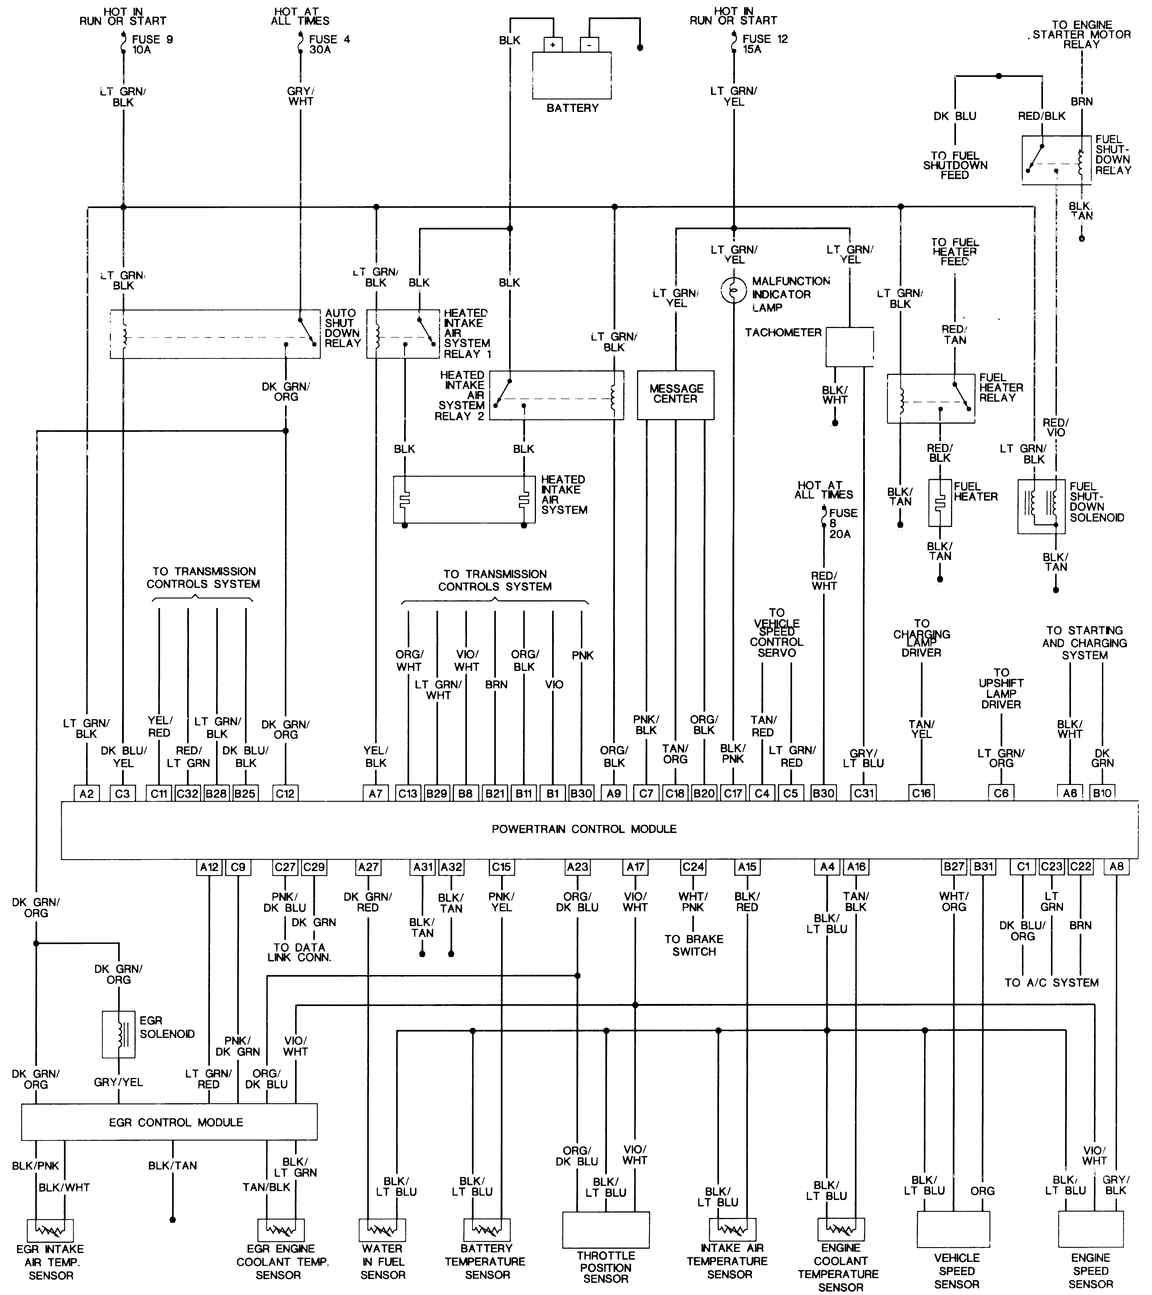 Roger Vivi Ersaks  2008 Dodge Trailer Wiring Diagram